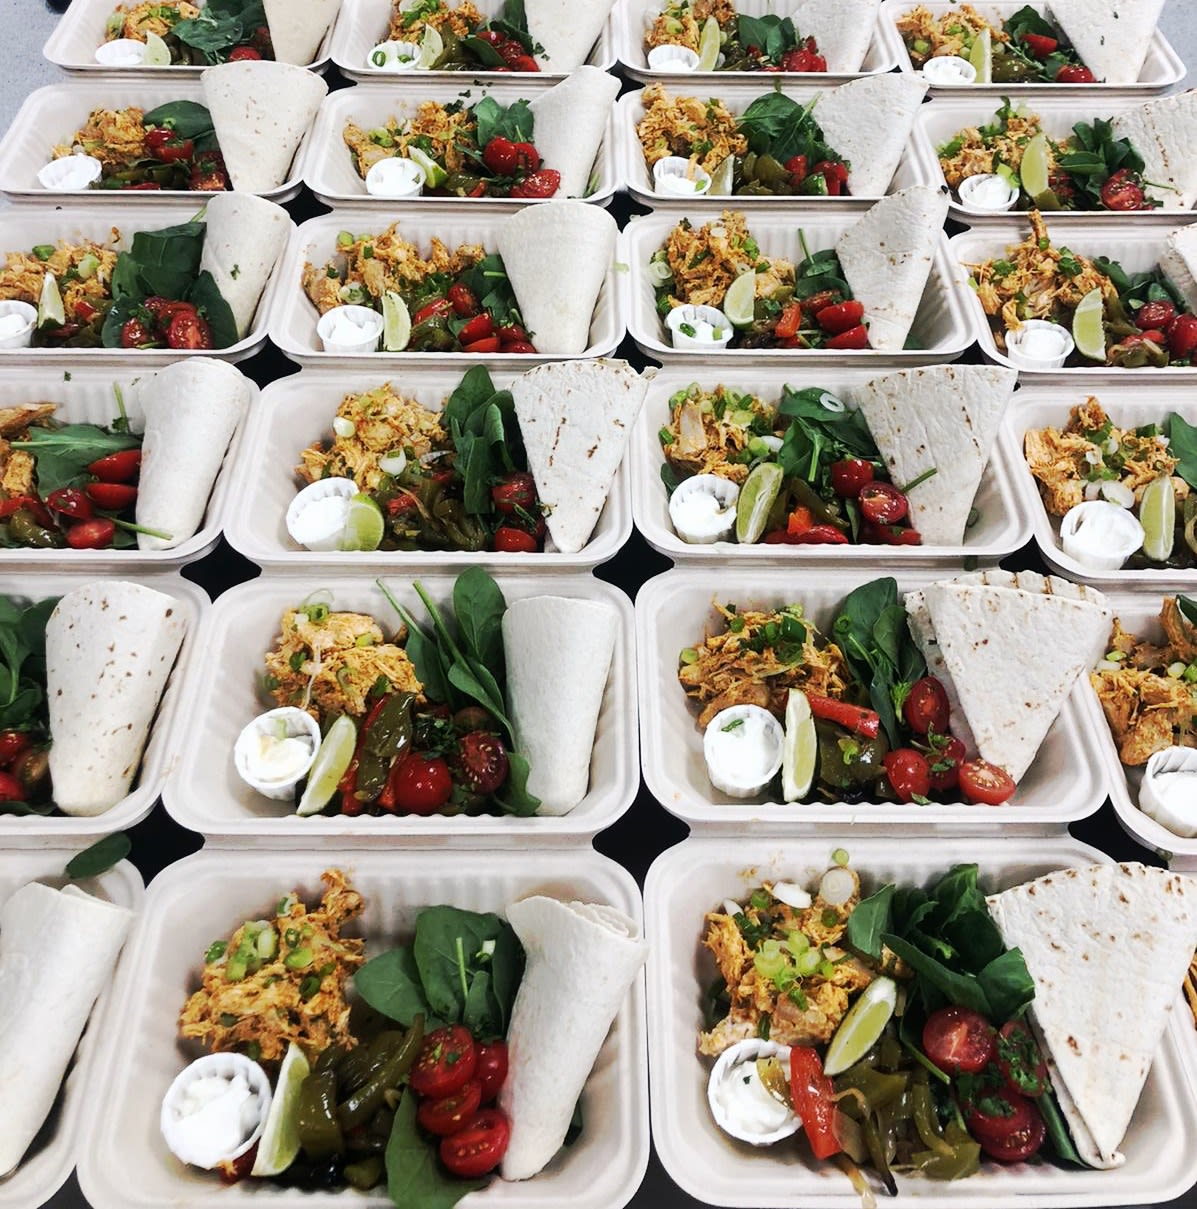 Meals from Vital Meals